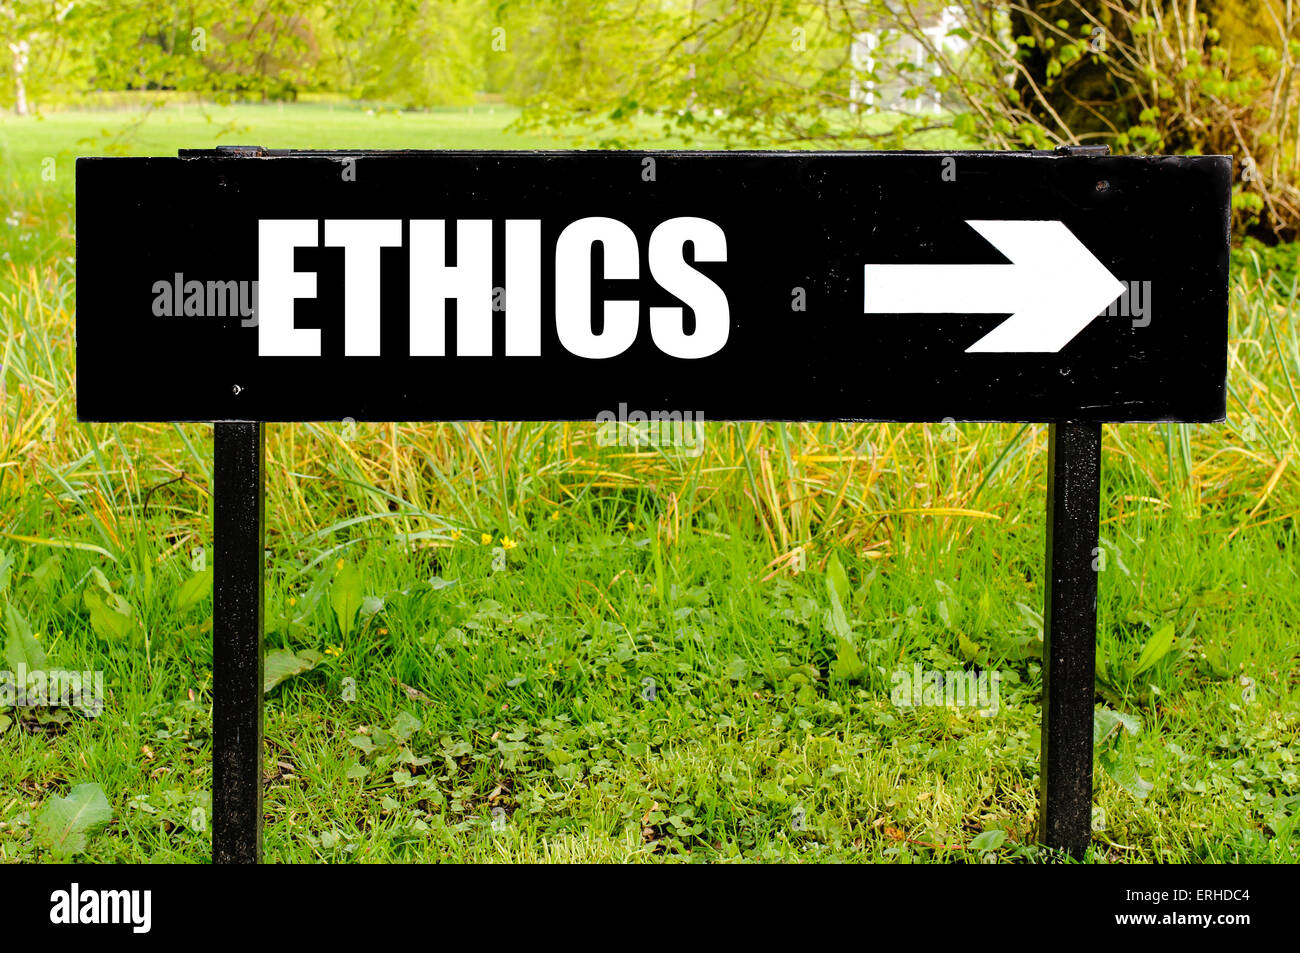 ETHICS written on directional black metal sign with arrow pointing to the right against natural green  background. - Stock Image